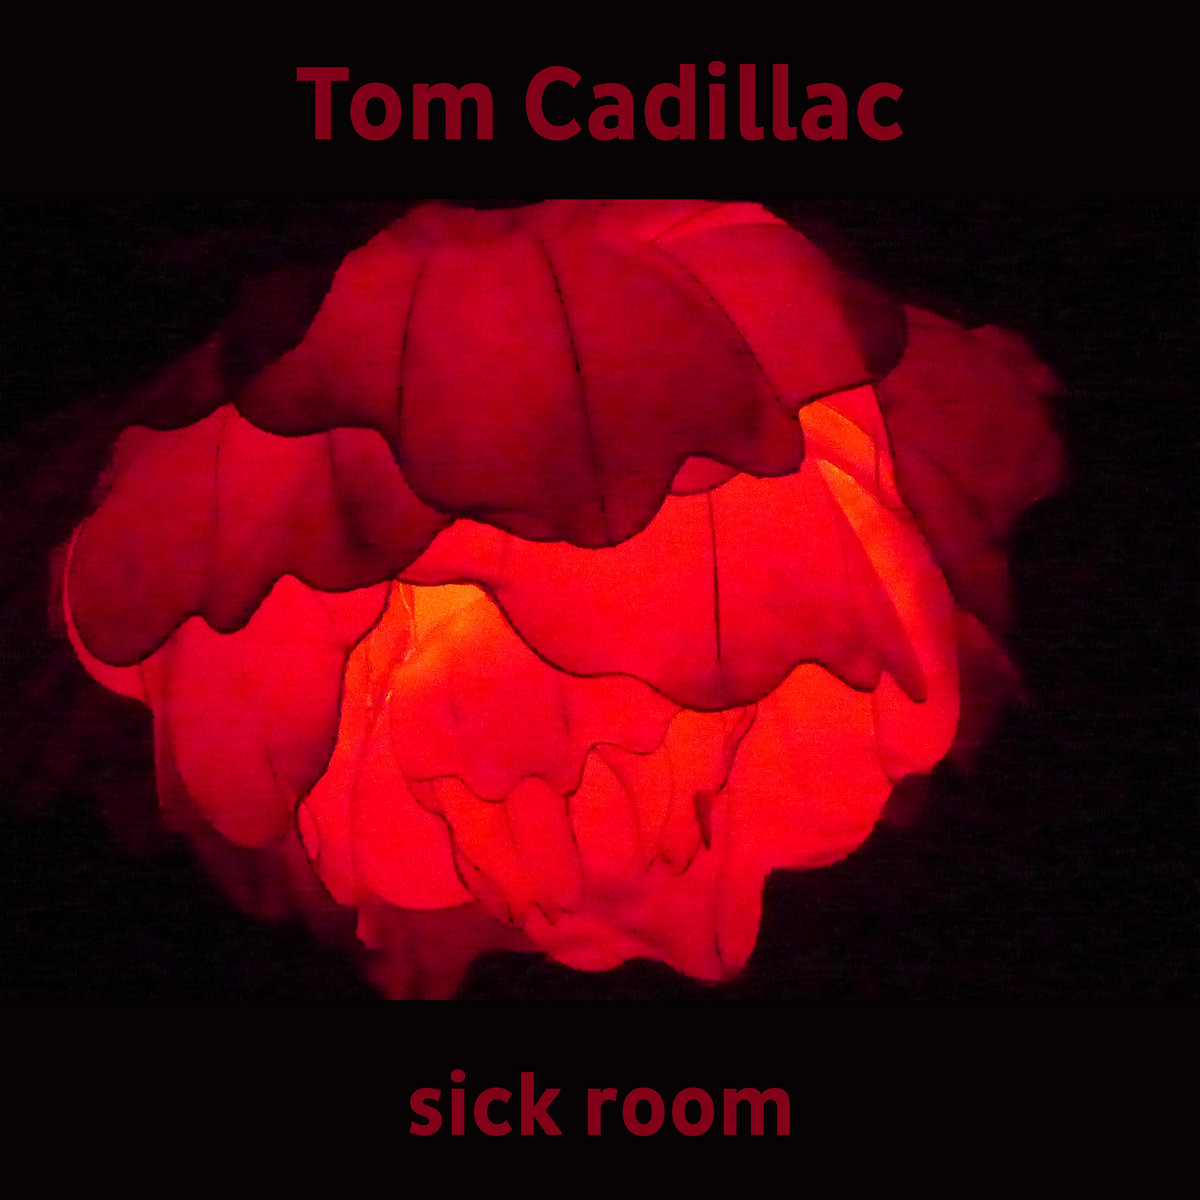 Tom Cadillac – sick room